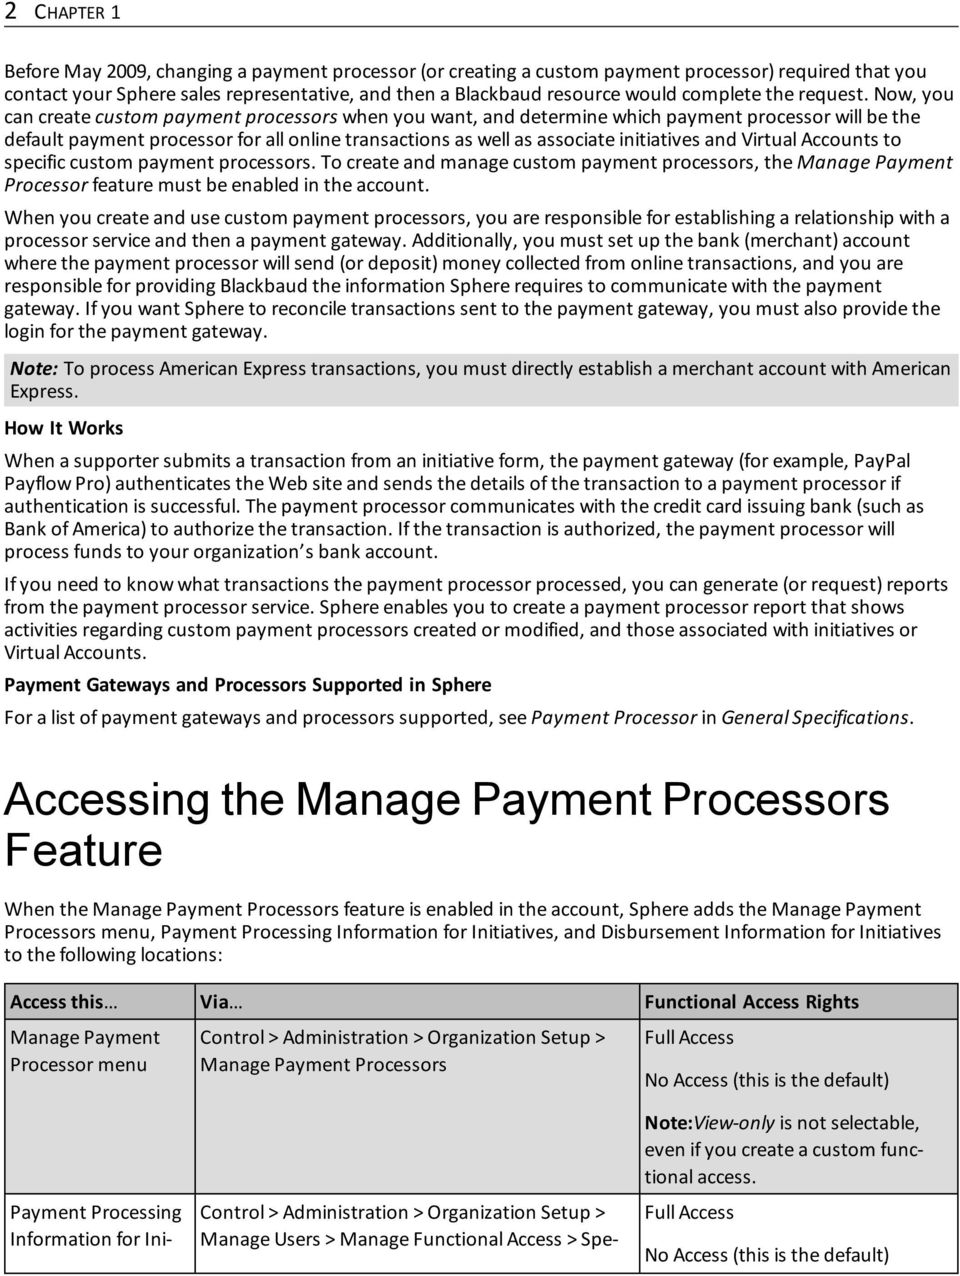 Now, you can create custom payment processors when you want, and determine which payment processor will be the default payment processor for all online transactions as well as associate initiatives